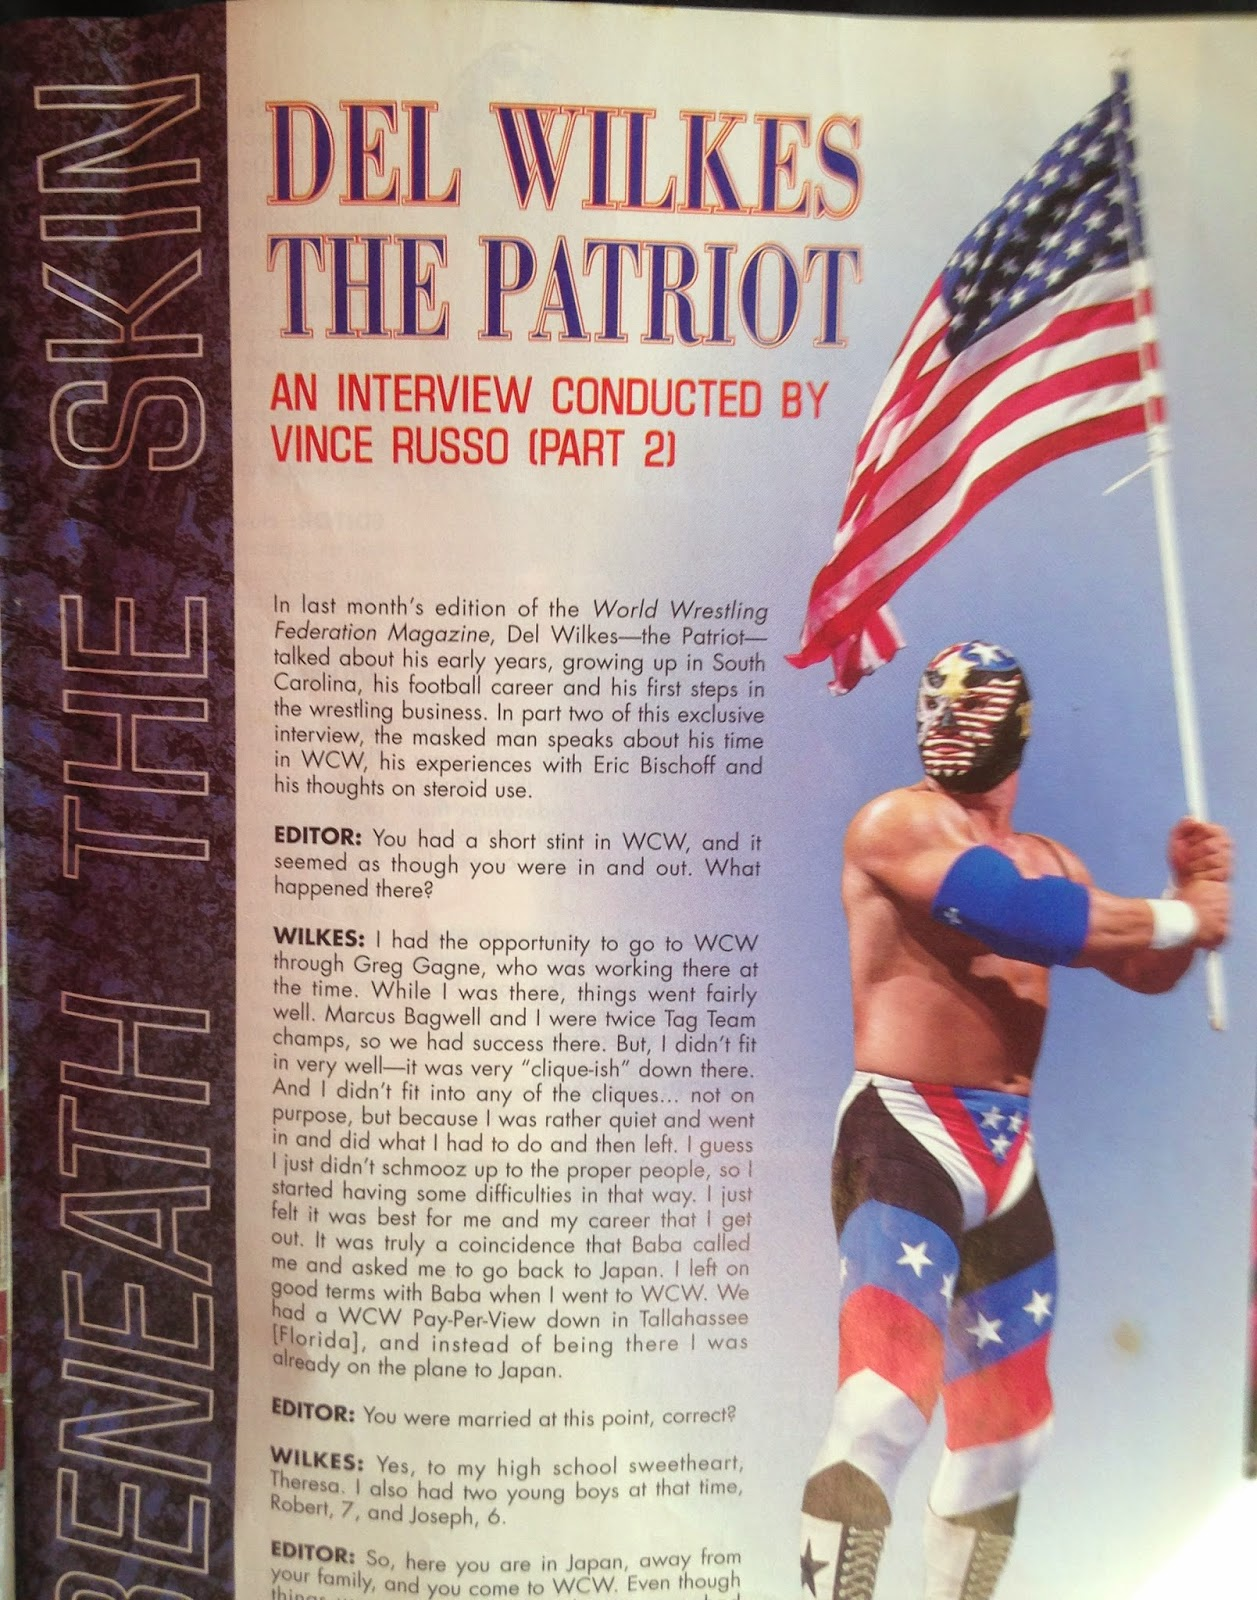 WWF MAGAZINE - JANUARY 1998 - Del Wilkes - The Patriot